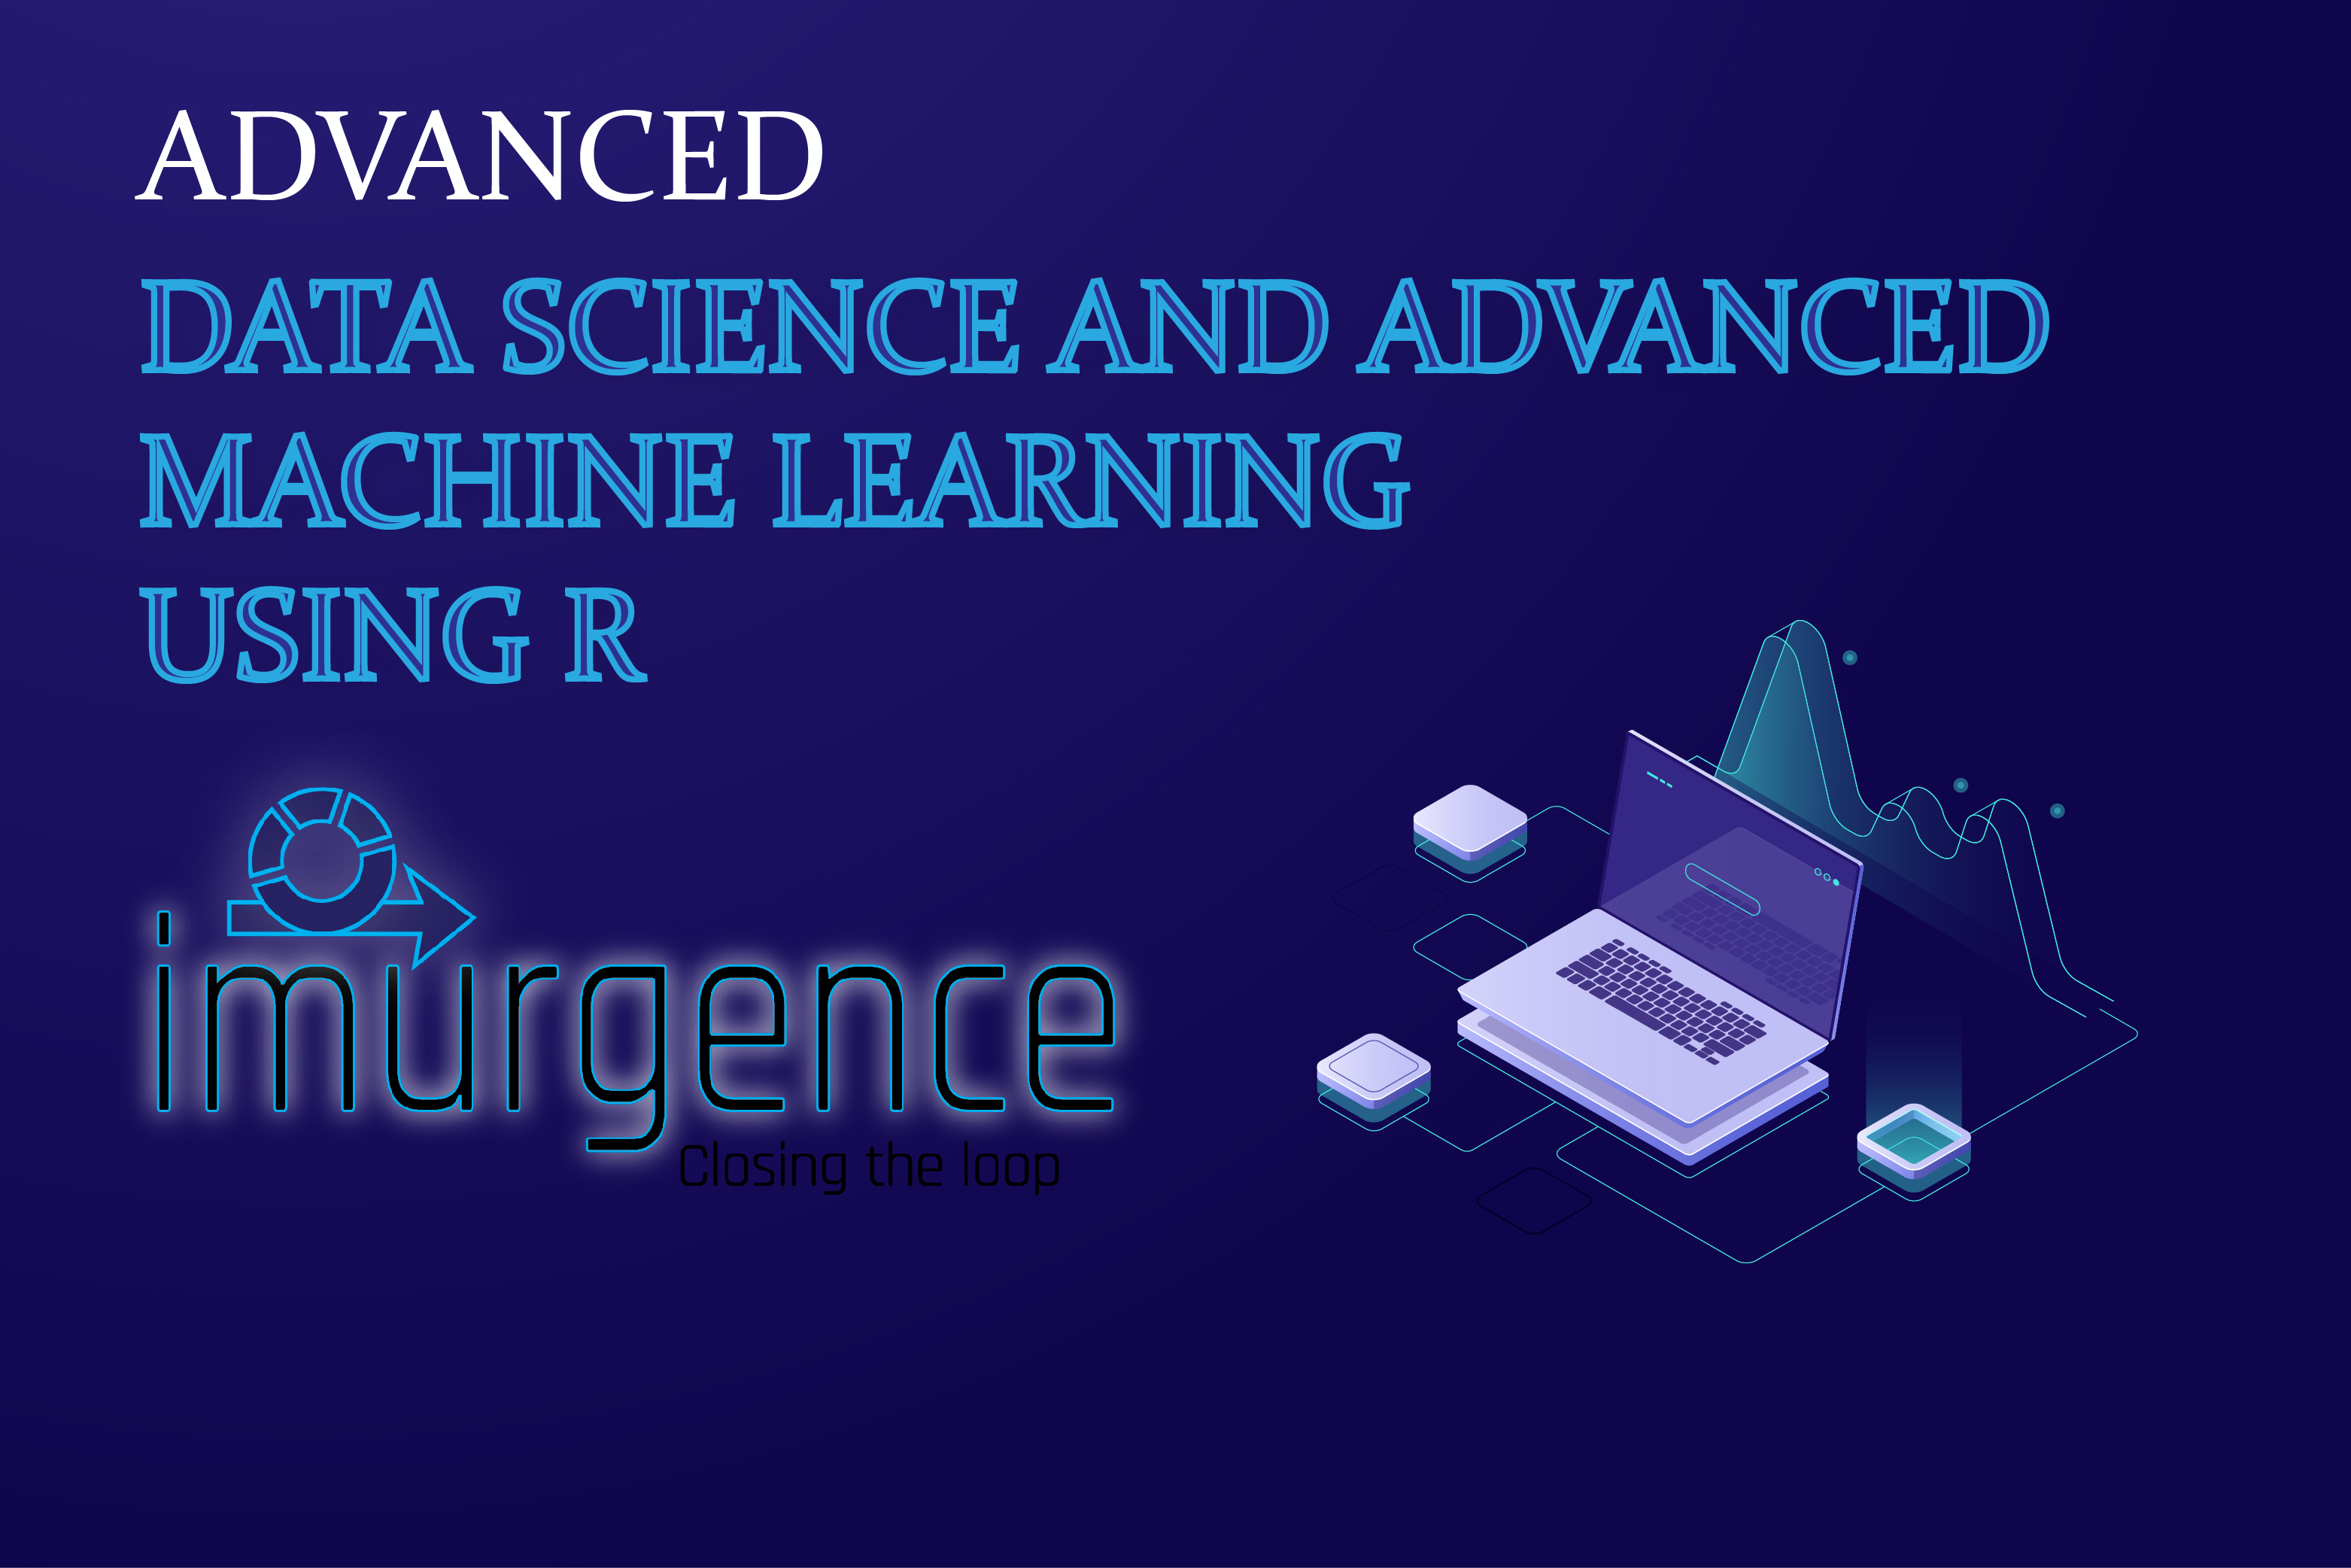 Certificate Program in Data Science & Advanced Machine Learning using R